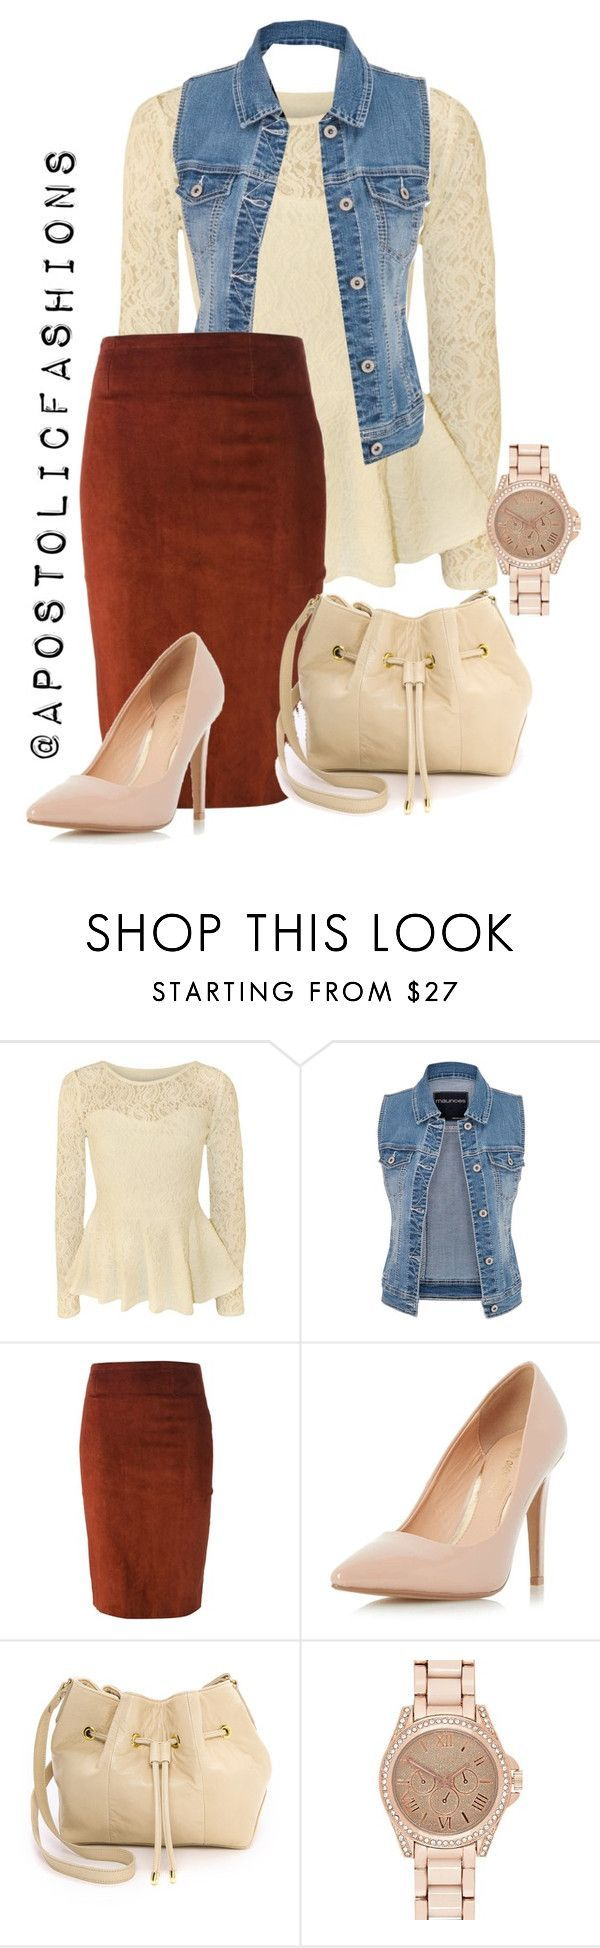 """""""Apostolic Fashions #1343"""" by apostolicfashions ❤️ liked on Polyvore featuring Papermoon, maurices, STOULS, Dorothy Perkins, Lauren Merkin and River Island"""